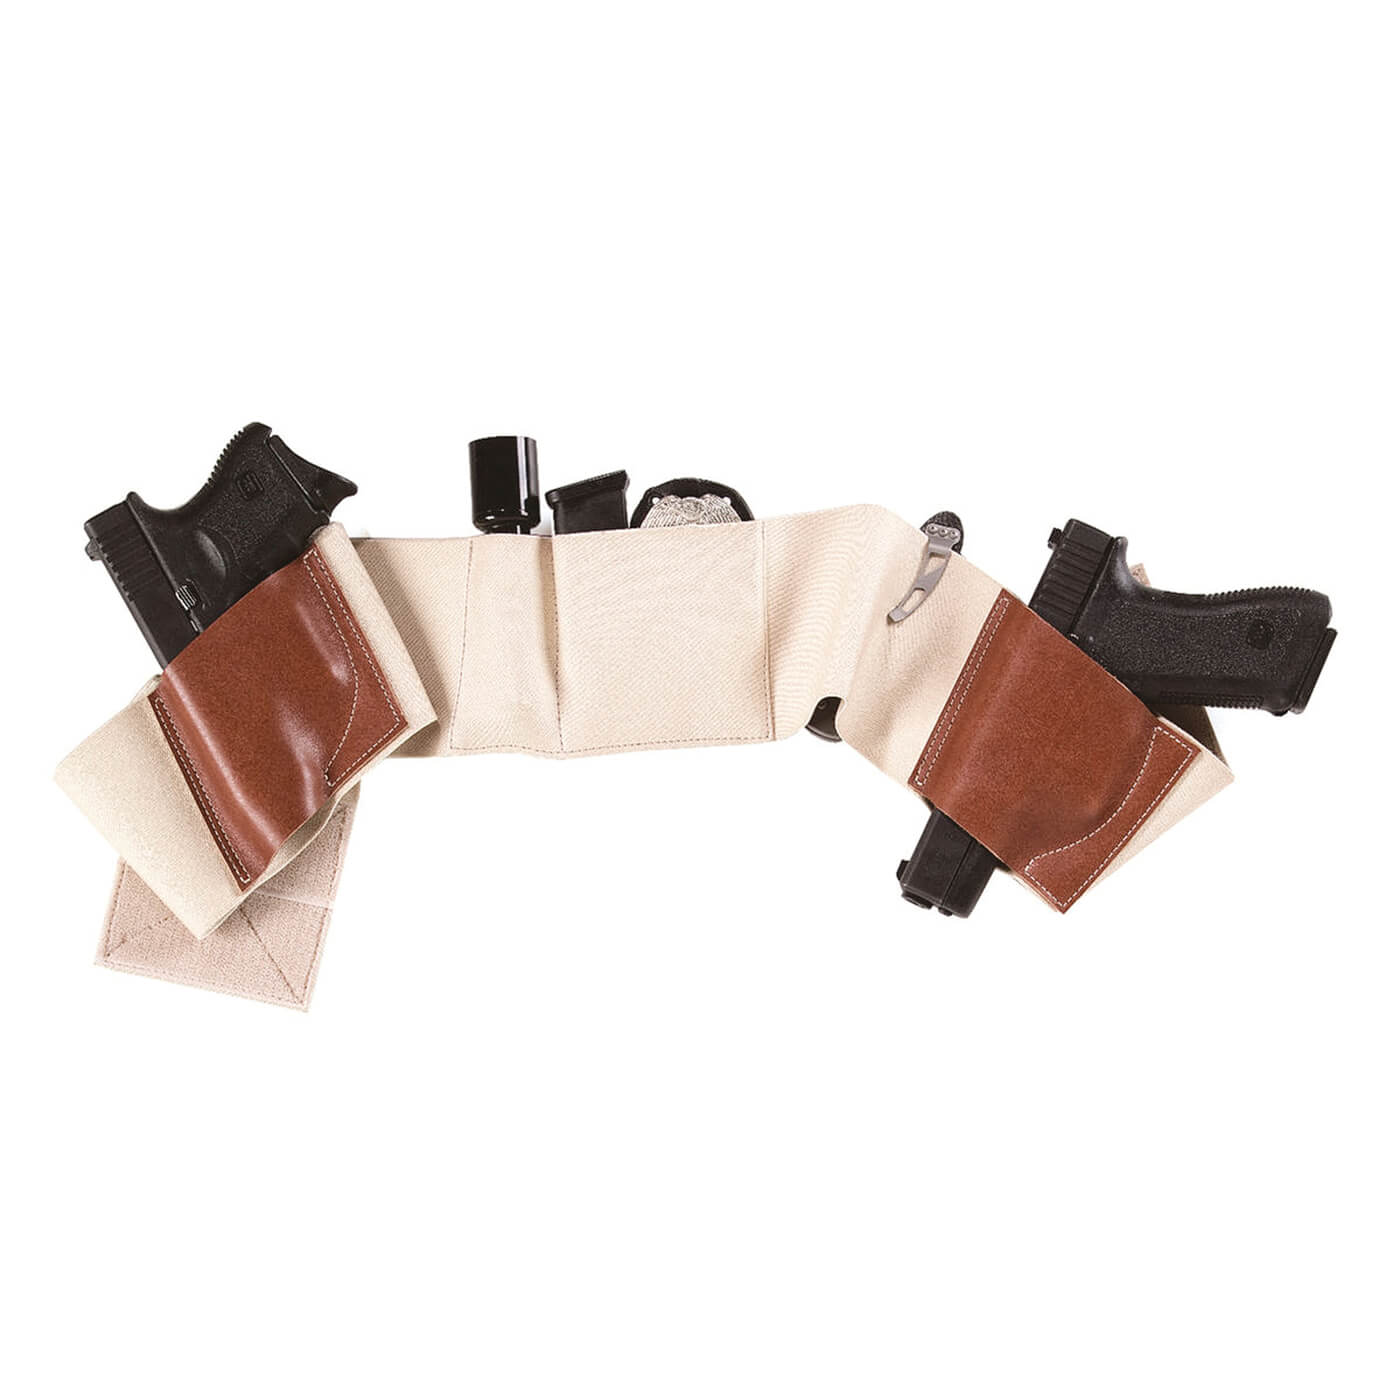 Galco Belly Band holster with Glock 19, Glock 23, badge, tac light, magazine and folding knife mounted